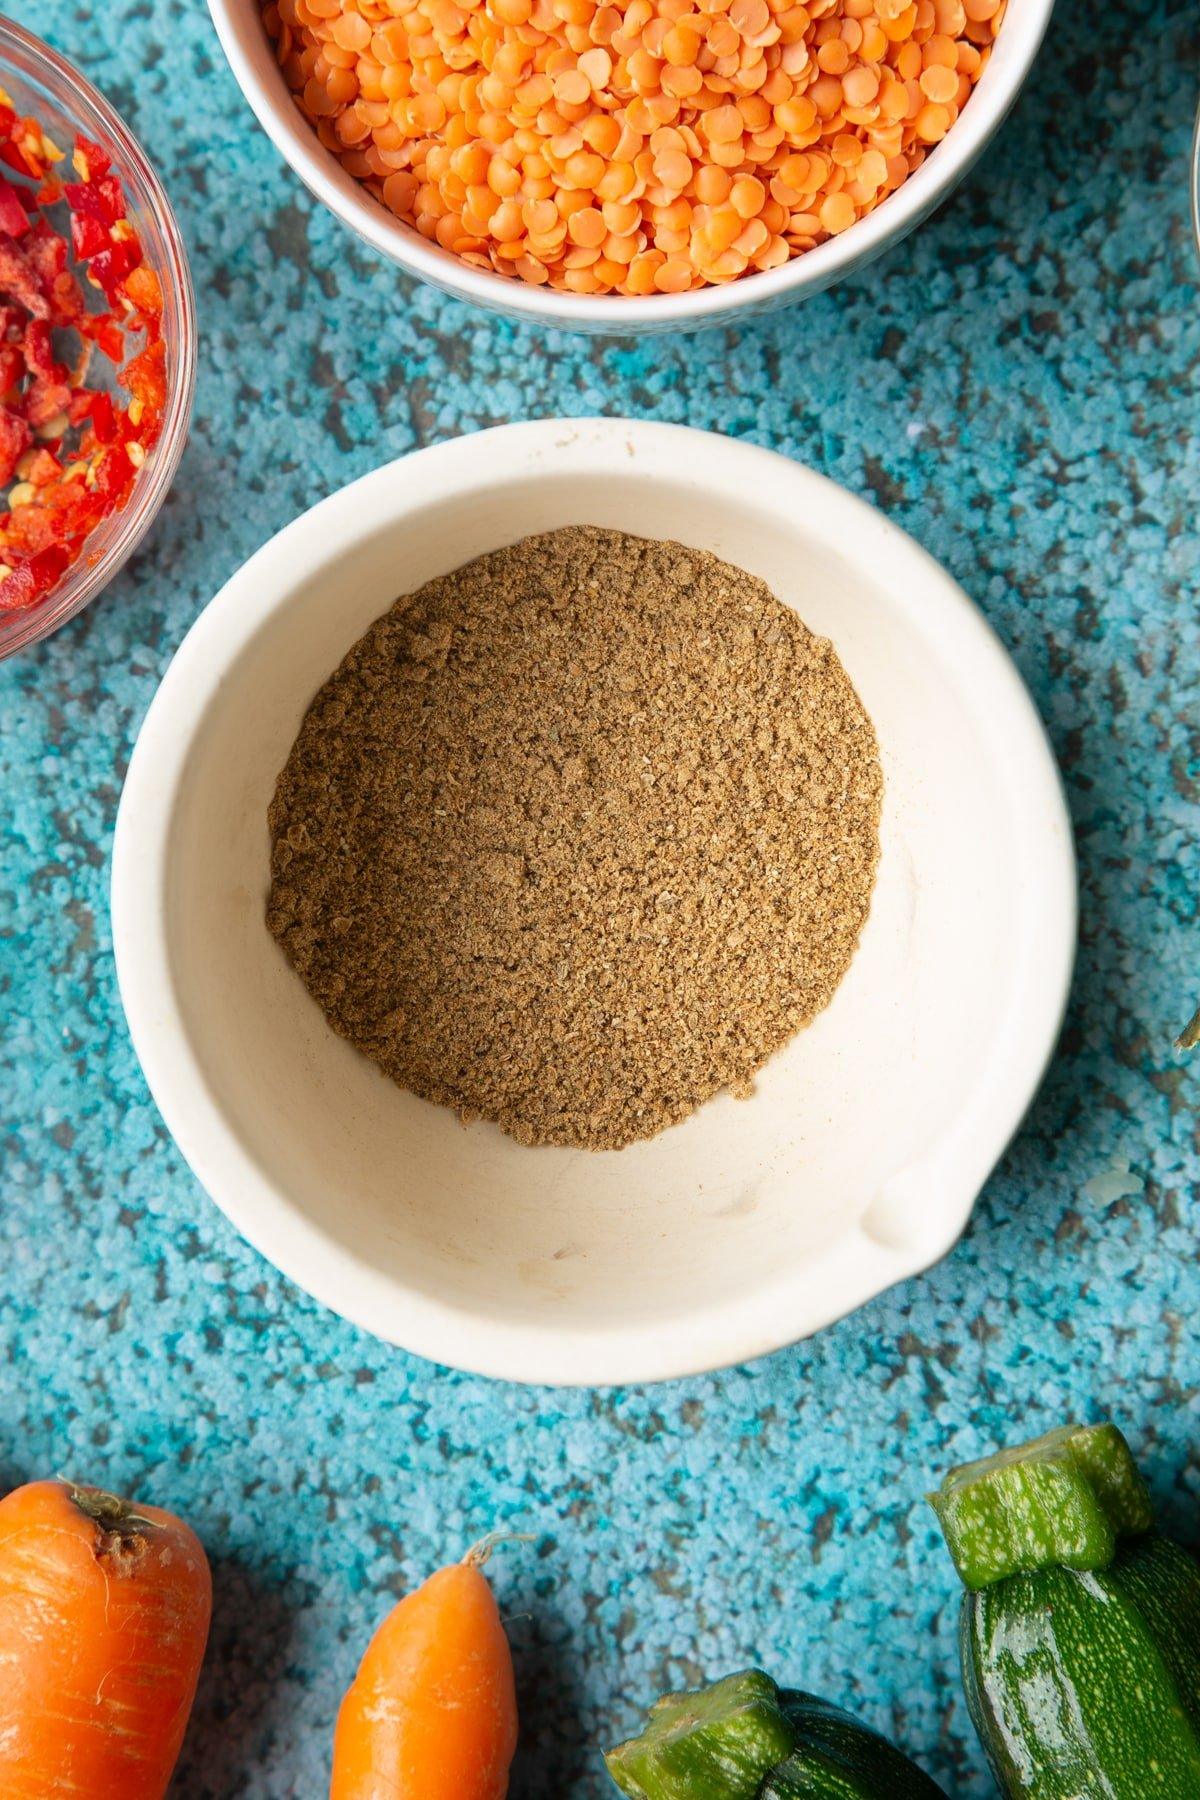 Ground spices in a mortar. Ingredients to make baked bean curry surround the mortar.